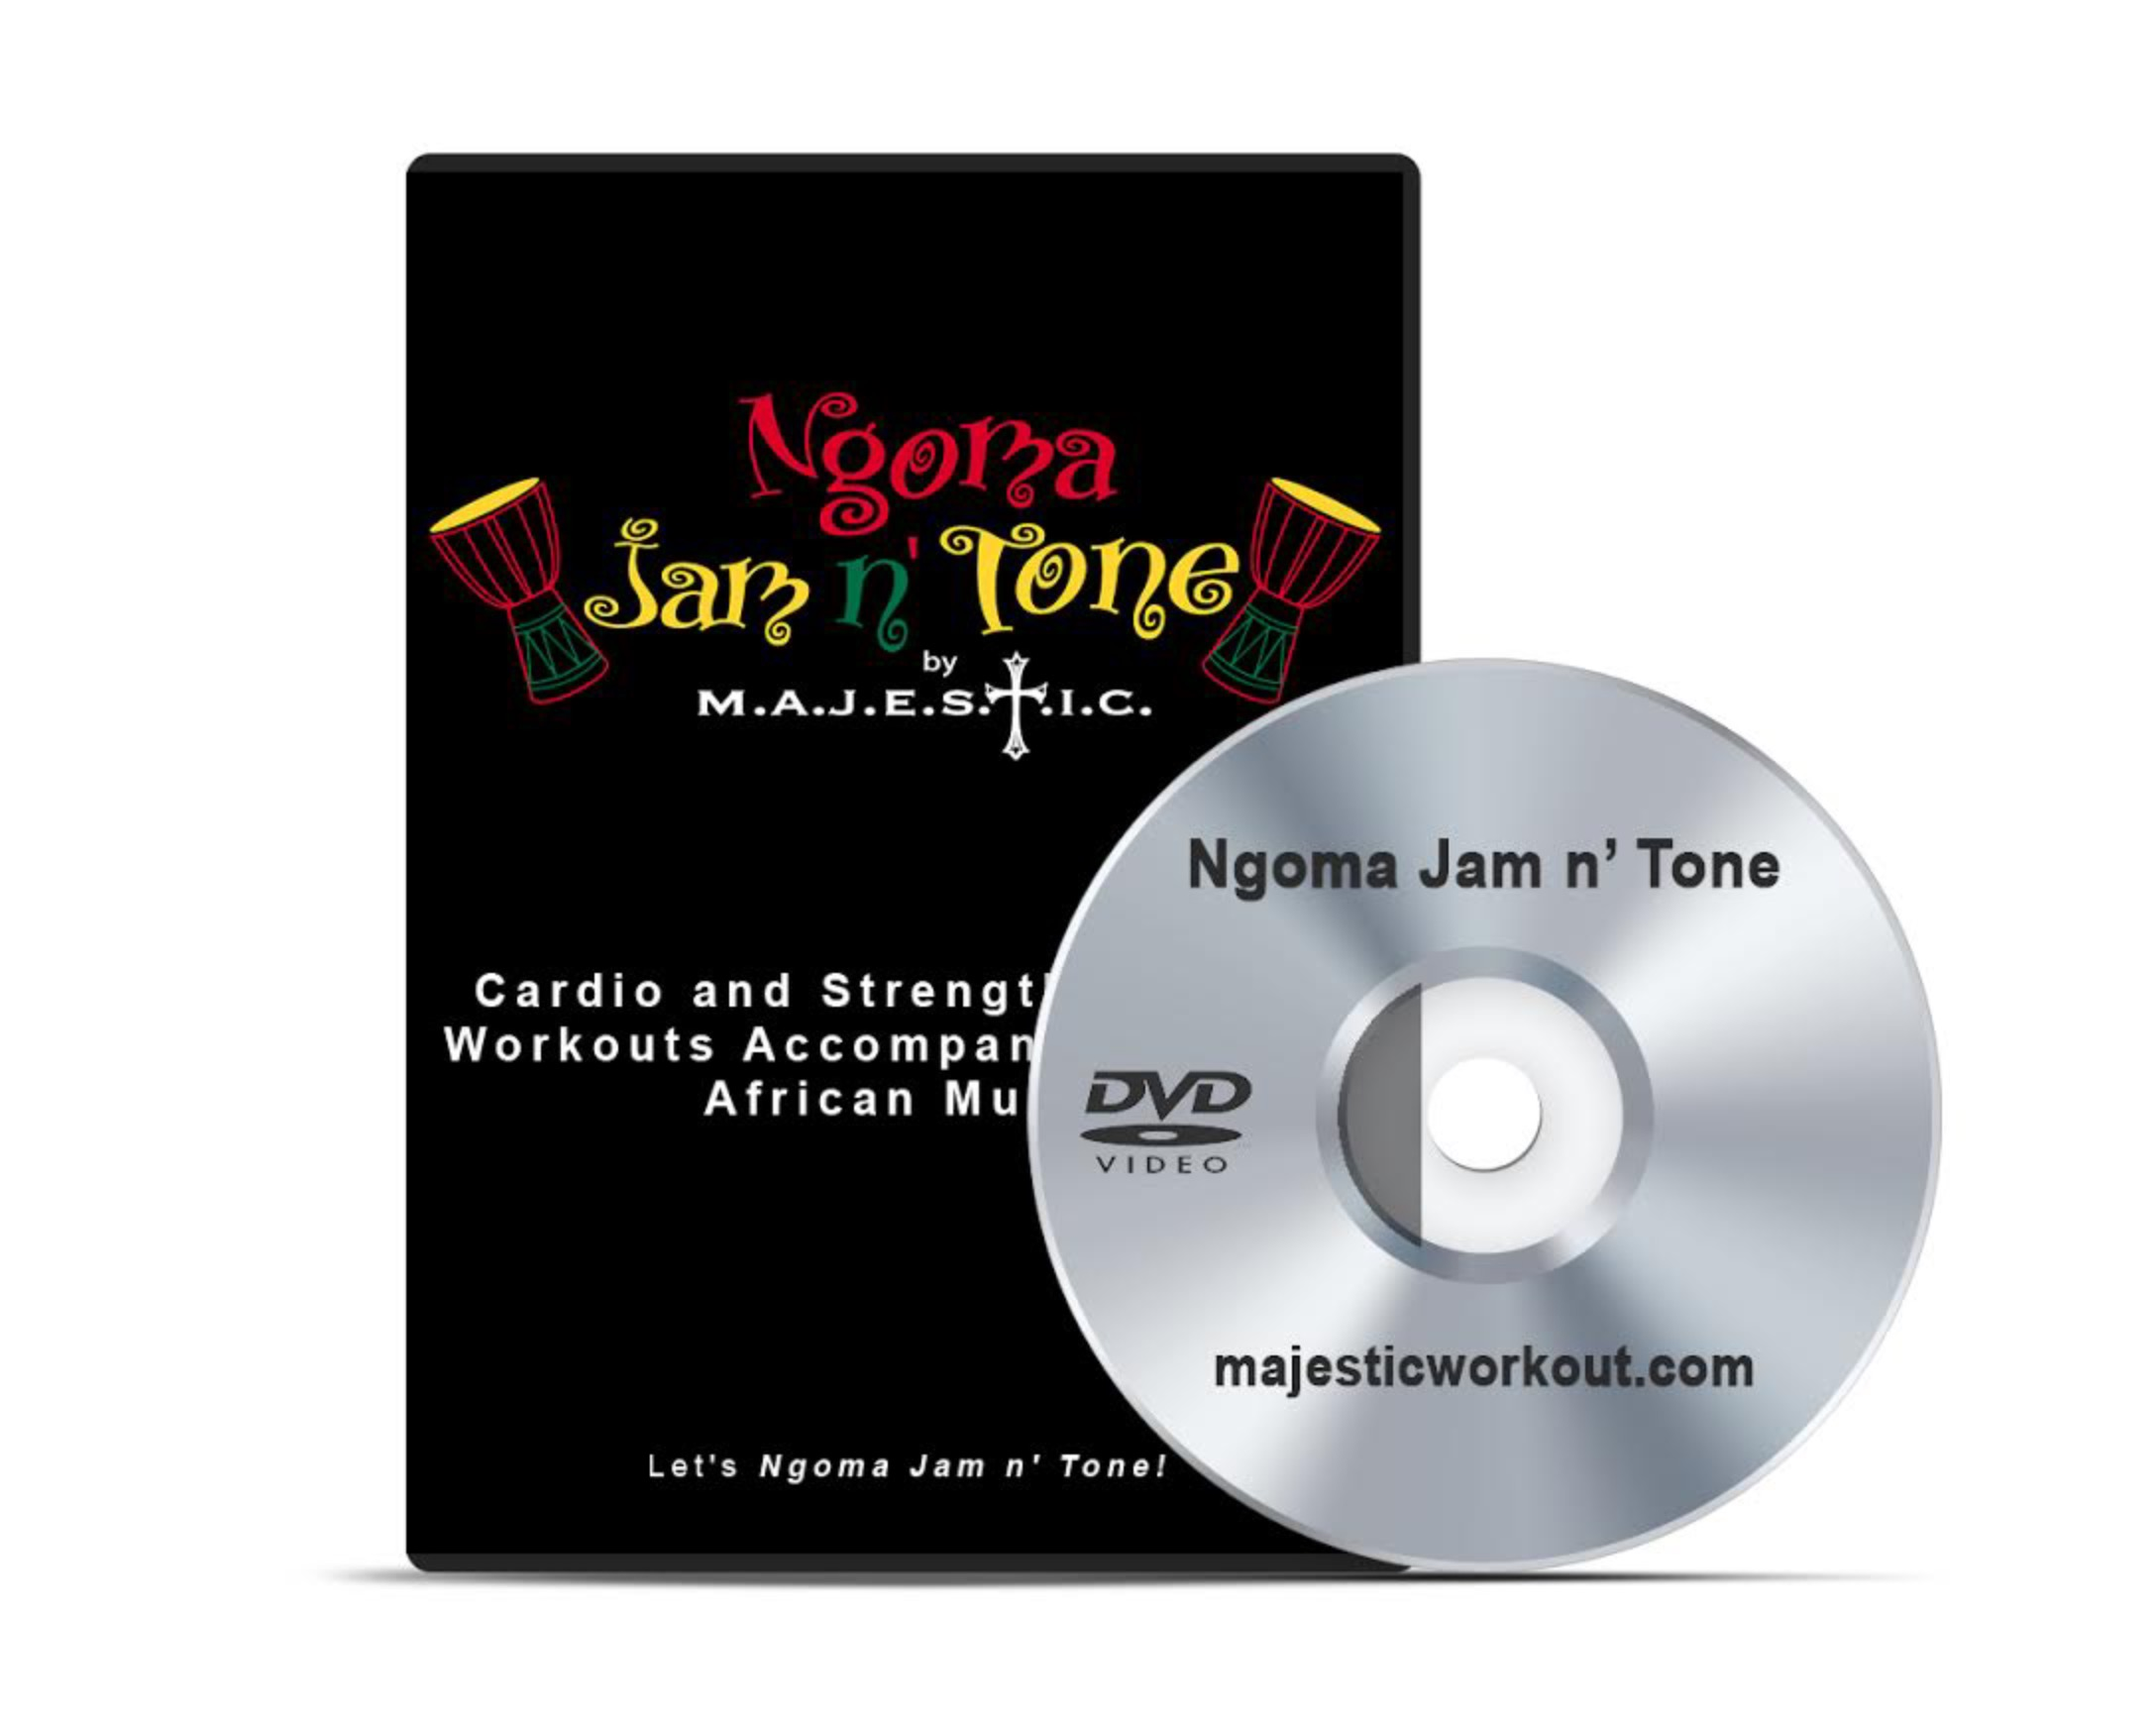 DIGITAL | Ngoma Jam n' Tone Exercise Video